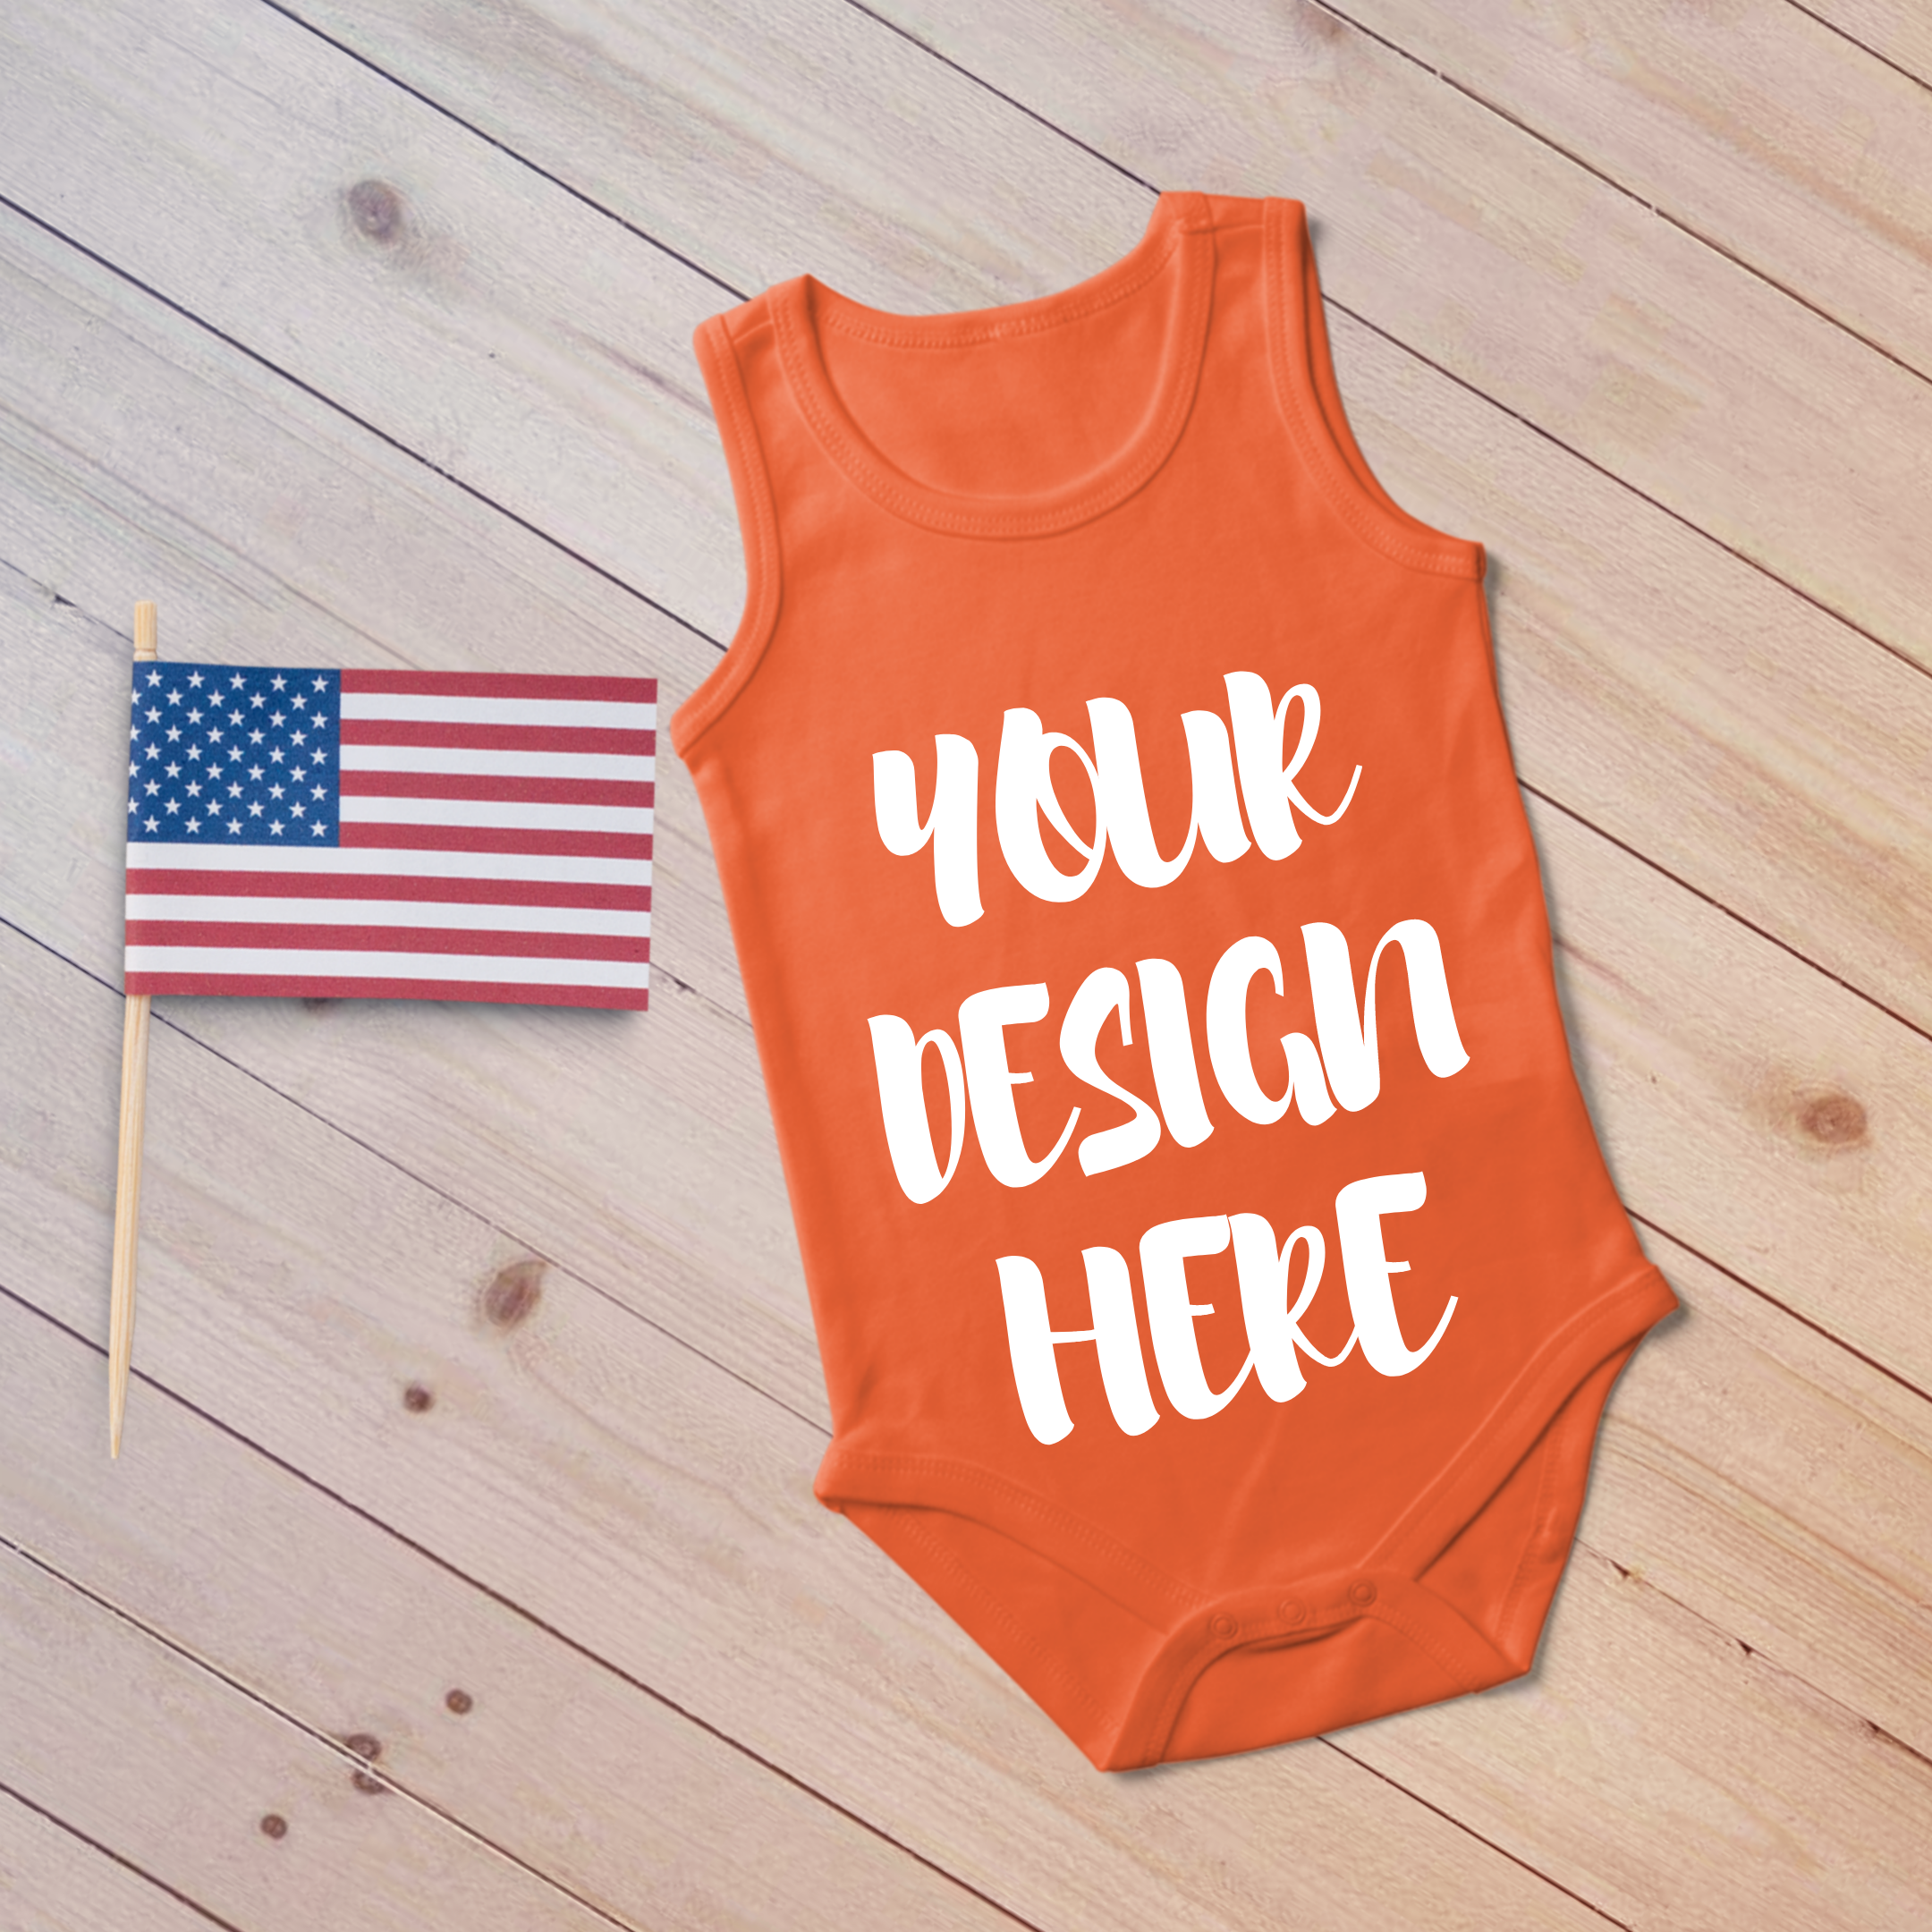 4th July Singlet Baby Bodysuit Mockups - 7 example image 3